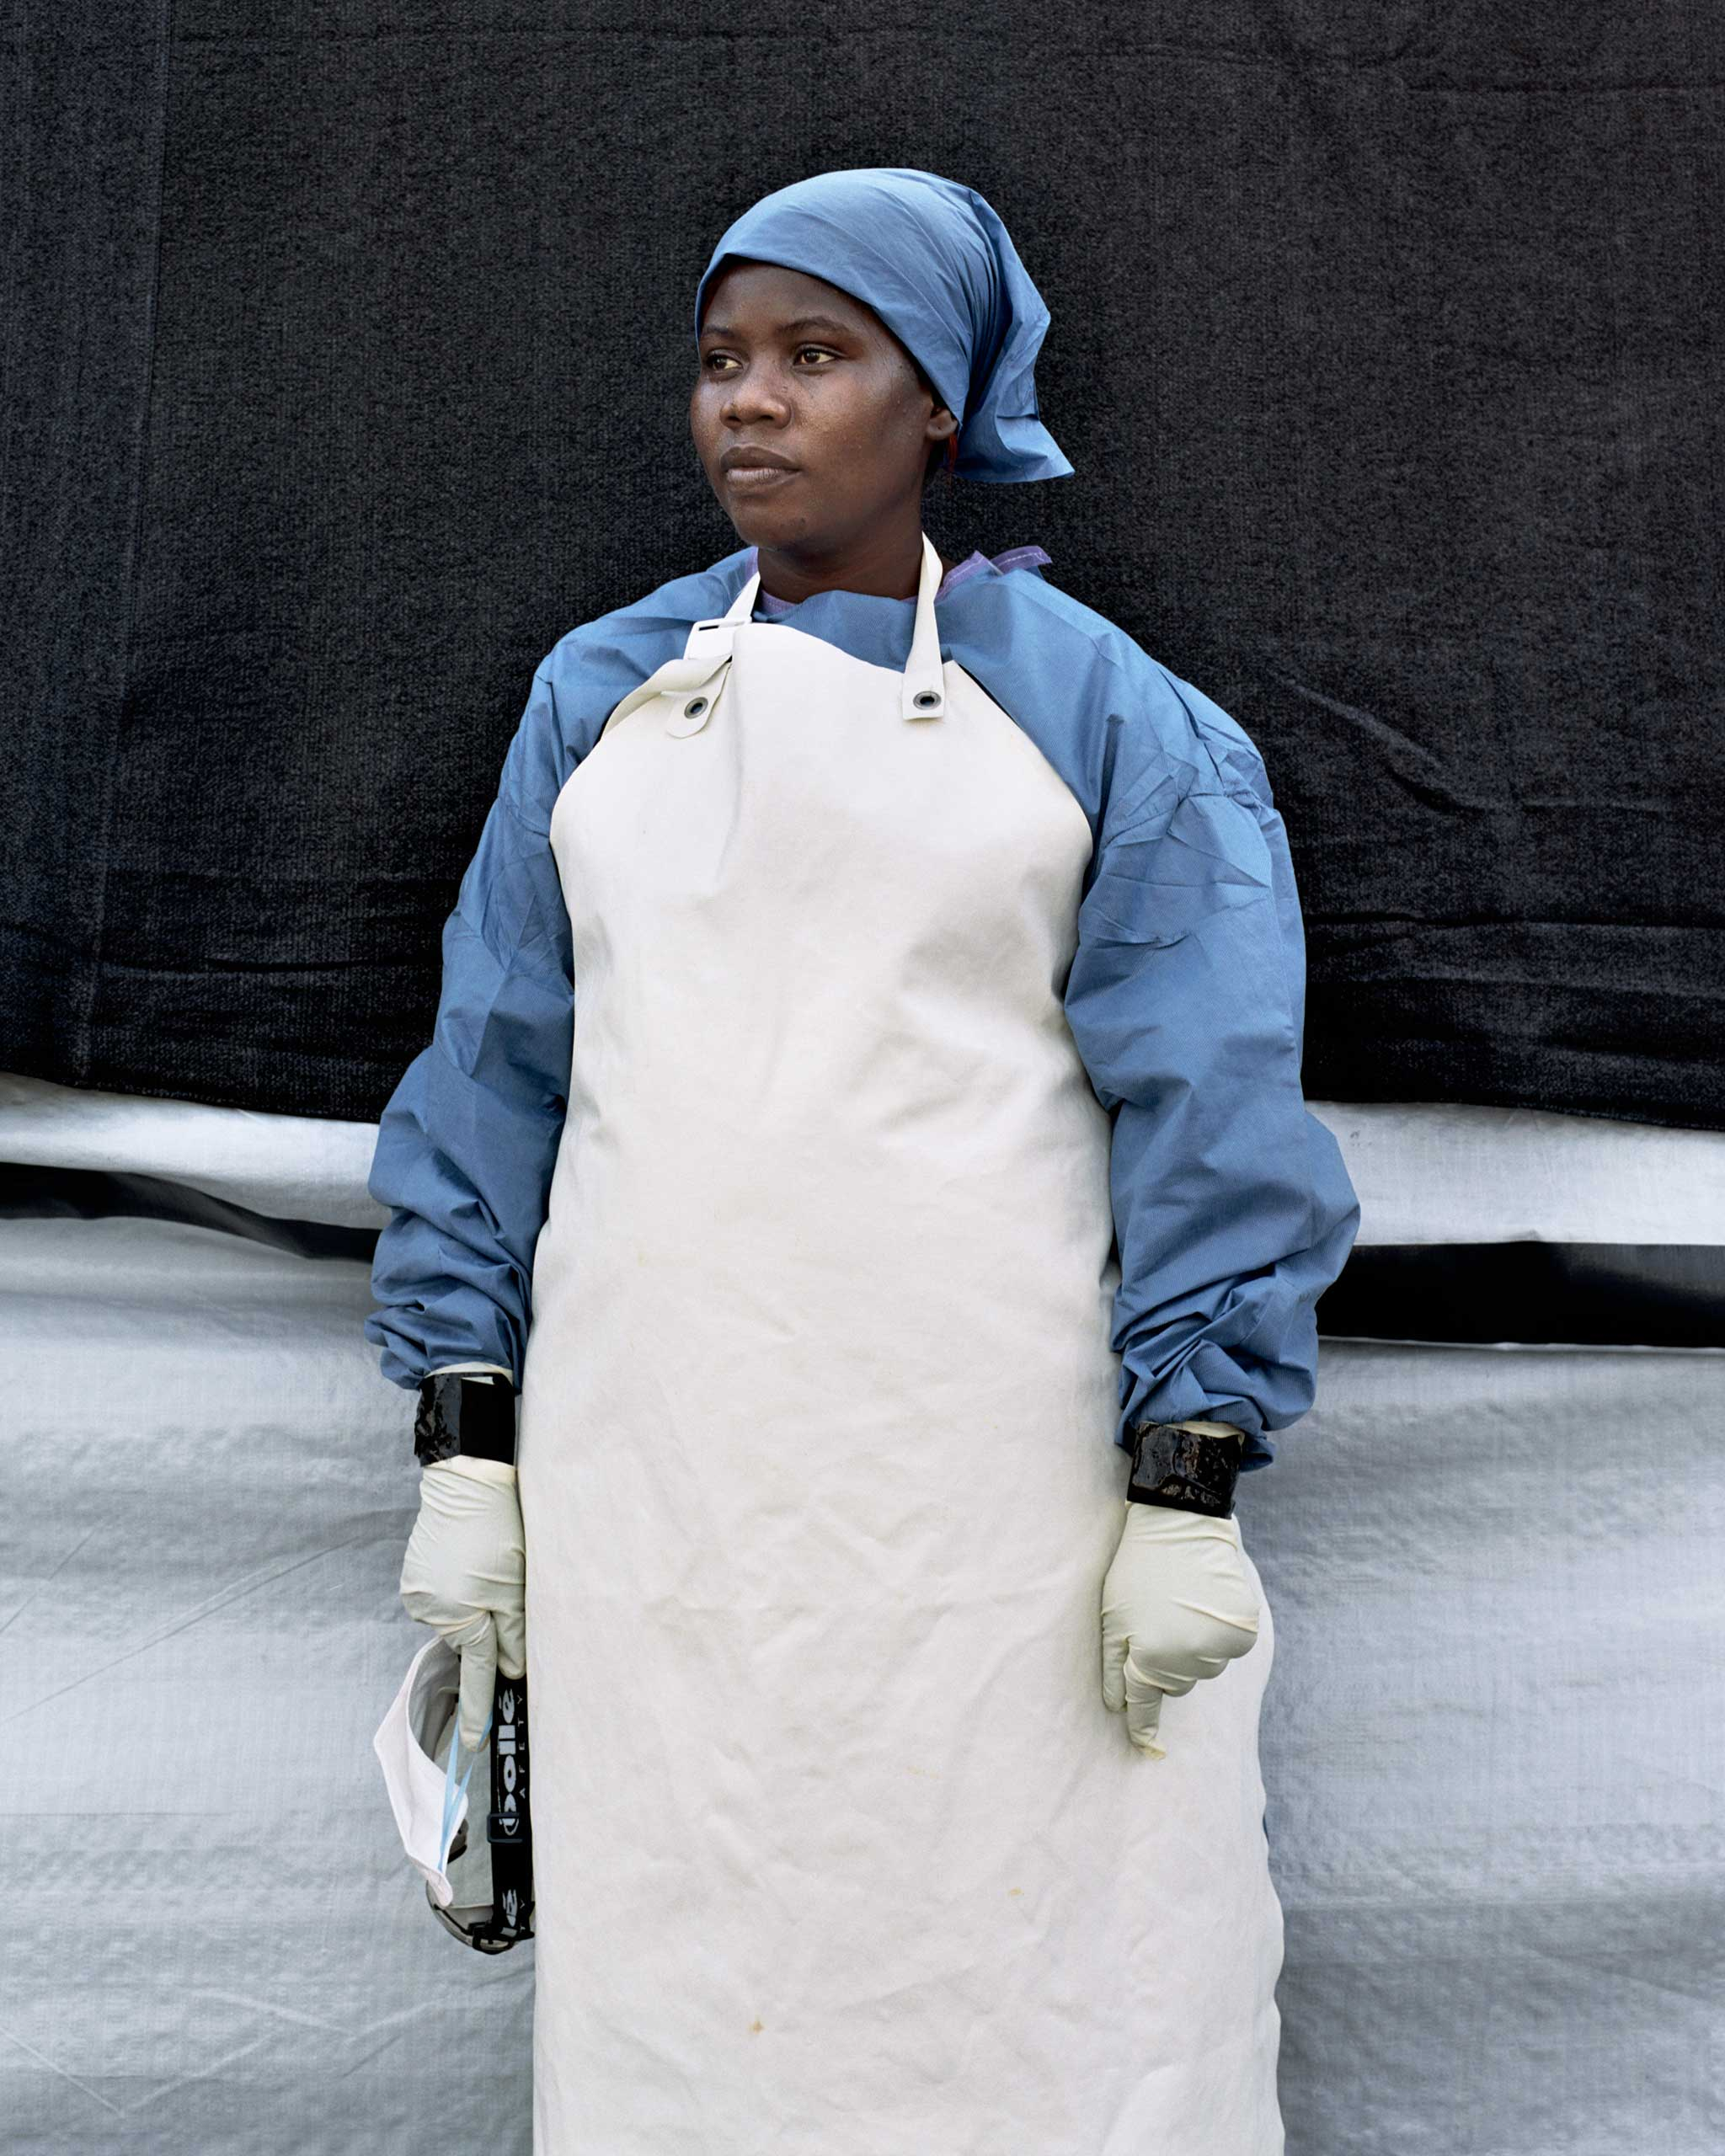 Salome Karwah, 26, a nurse currently working at Doctors Without Borders / Medecins Sans Frontieres' Ebola Treatment Unit in Monrovia, Liberia. Nov. 26, 2014